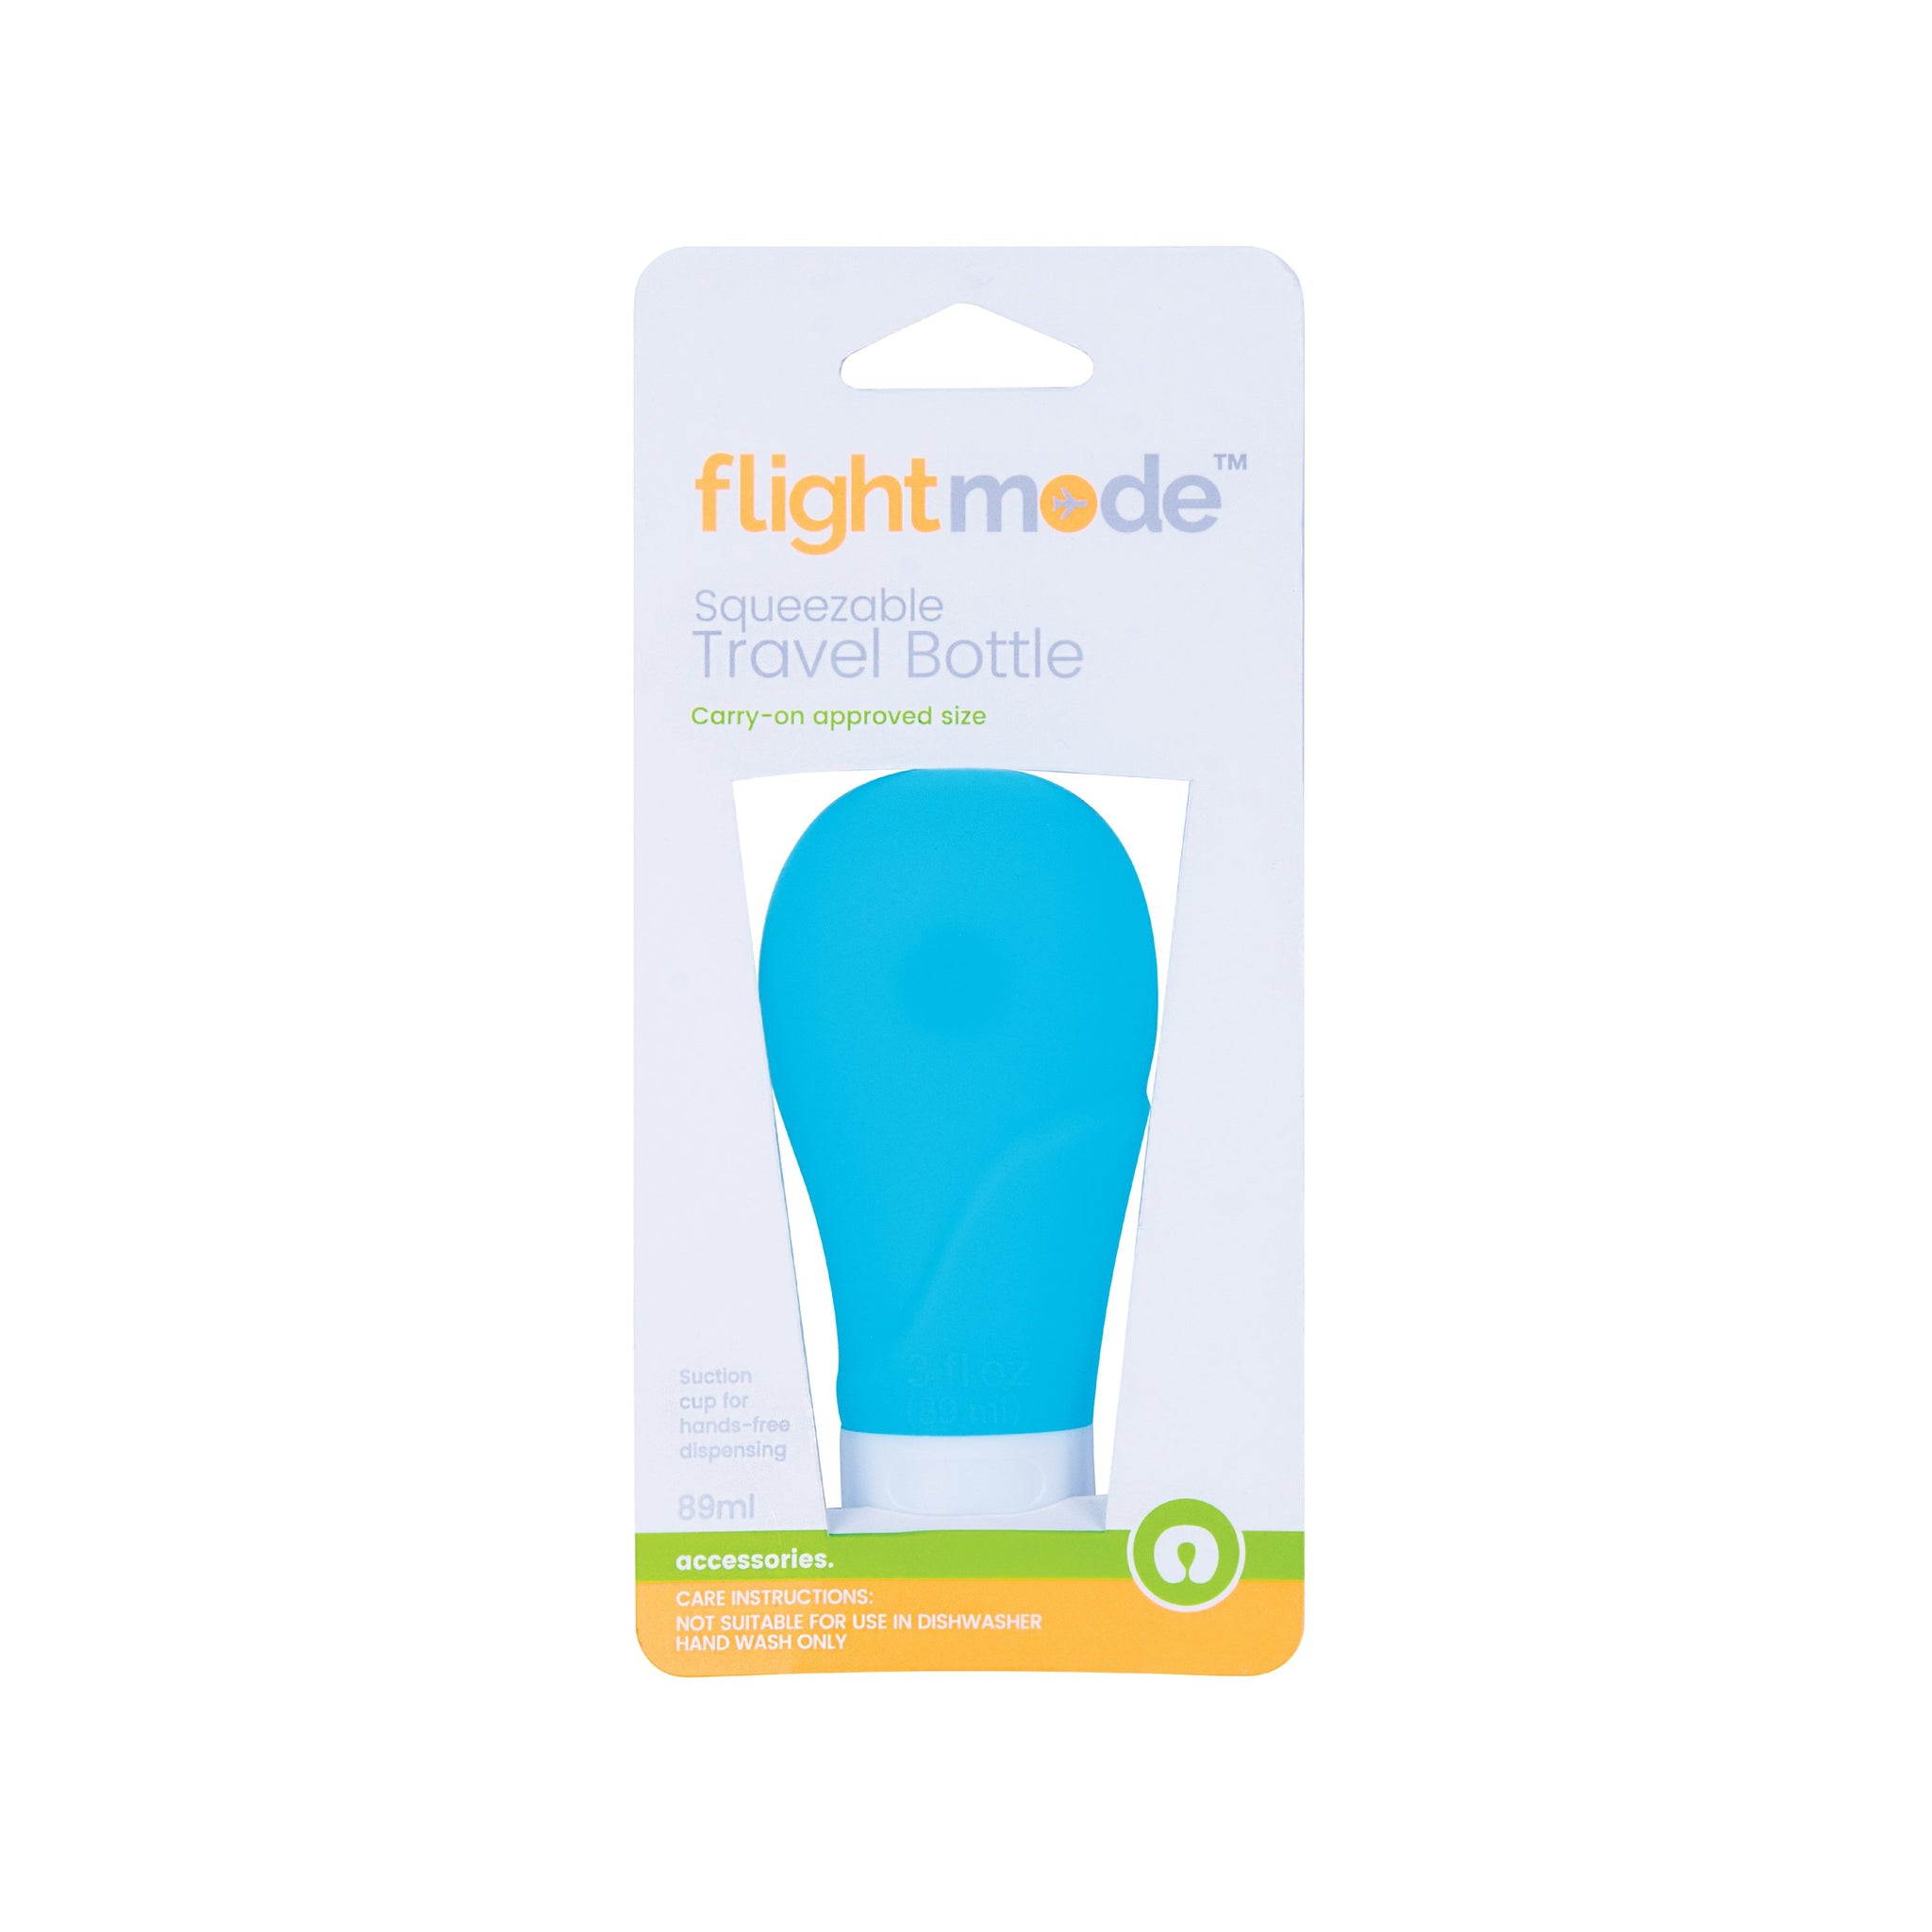 Flightmode 89ml Squeezable Travel Bottle - This non-drip and leak-proof Squeezable Travel Bottle is perfect for taking creams or lotions with you when travelling. With an easy fill cap and a suction cup for hands-free dispensing, and carry-on approved it's a versatile addition to any trip.